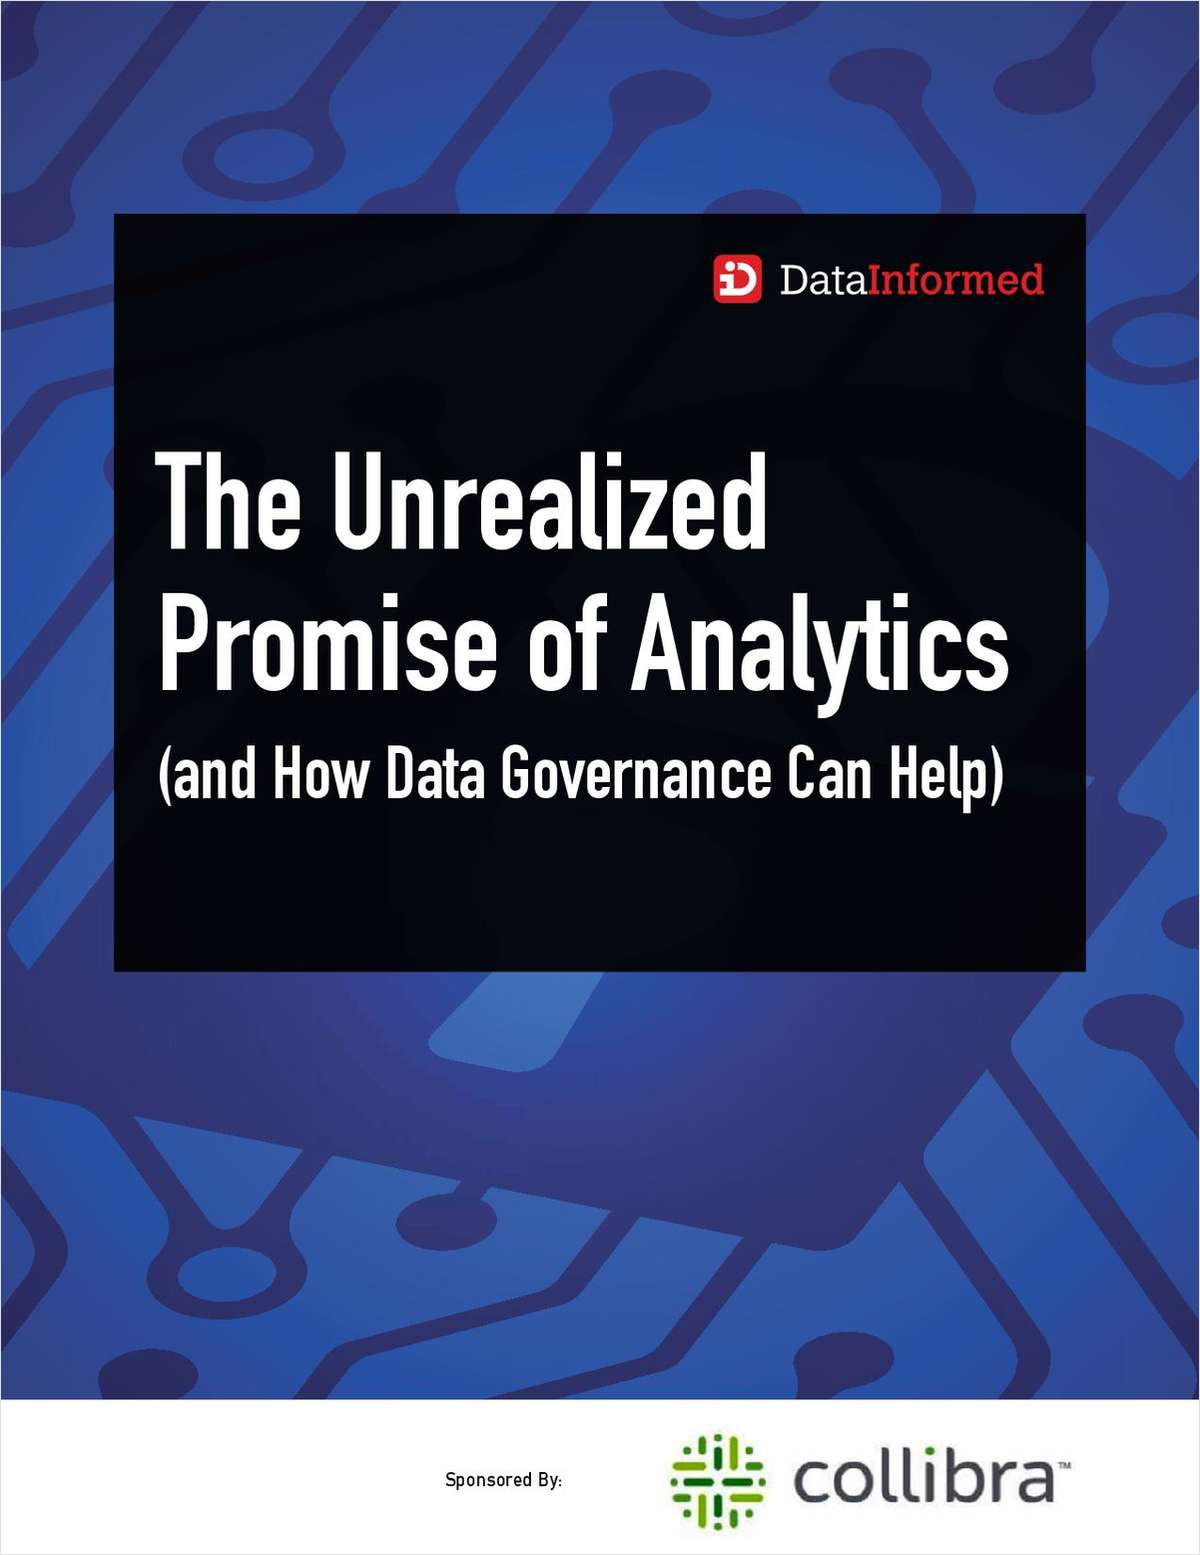 How Sales & Marketing Executives Can Take Advantage of the Unrealized Promise of Analytics